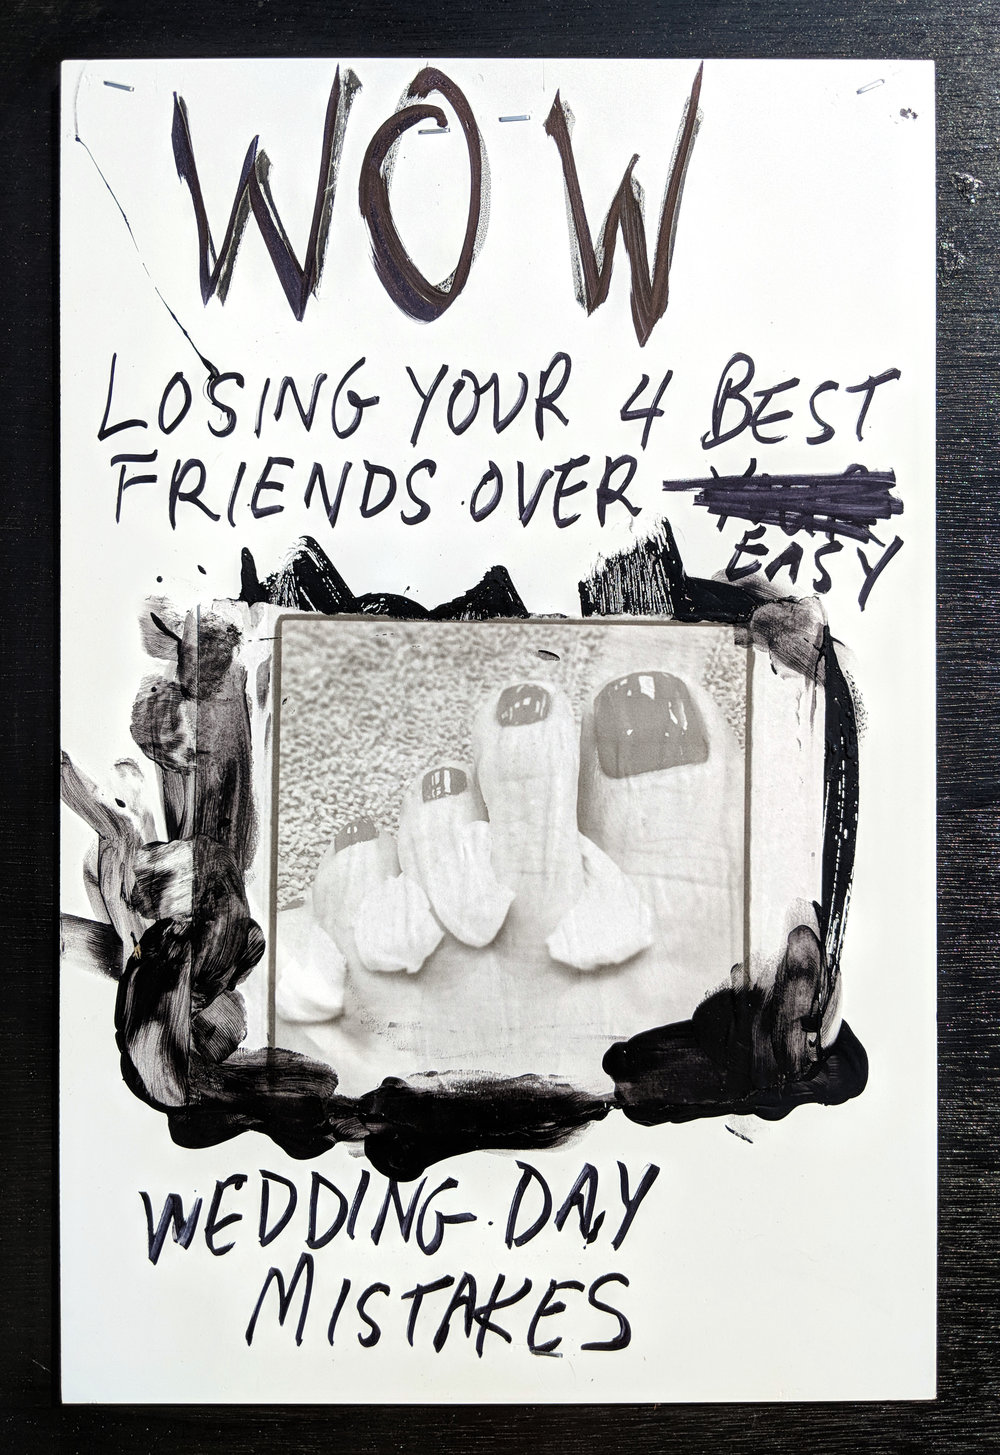 Wedding Day Mistakes.jpg